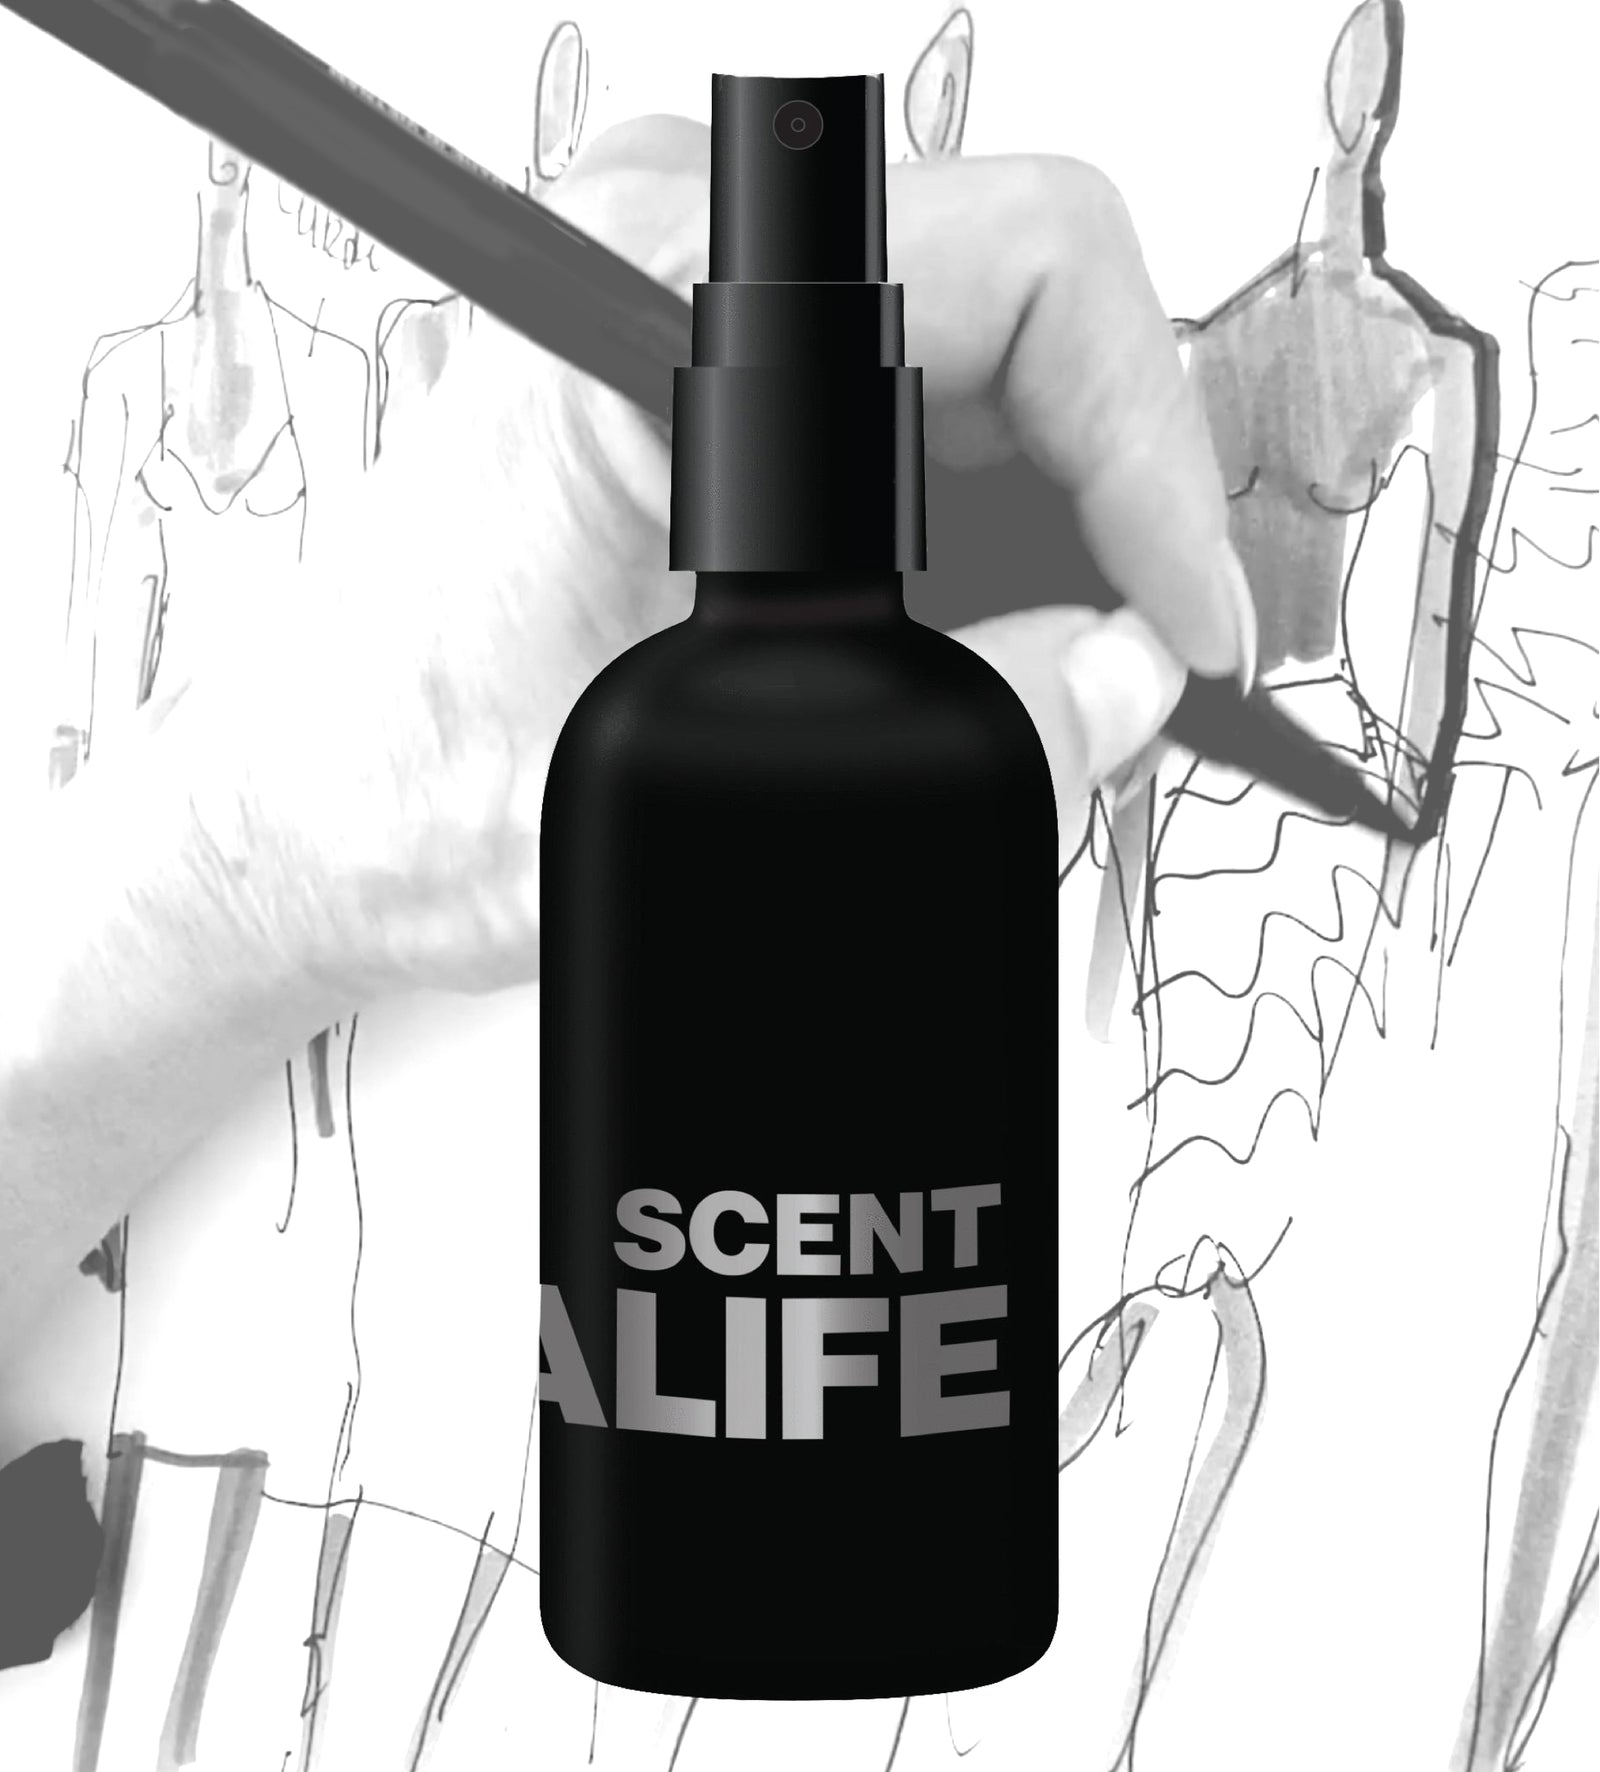 THE SCENT WITH NORMA'S ORIGINAL SKETCH